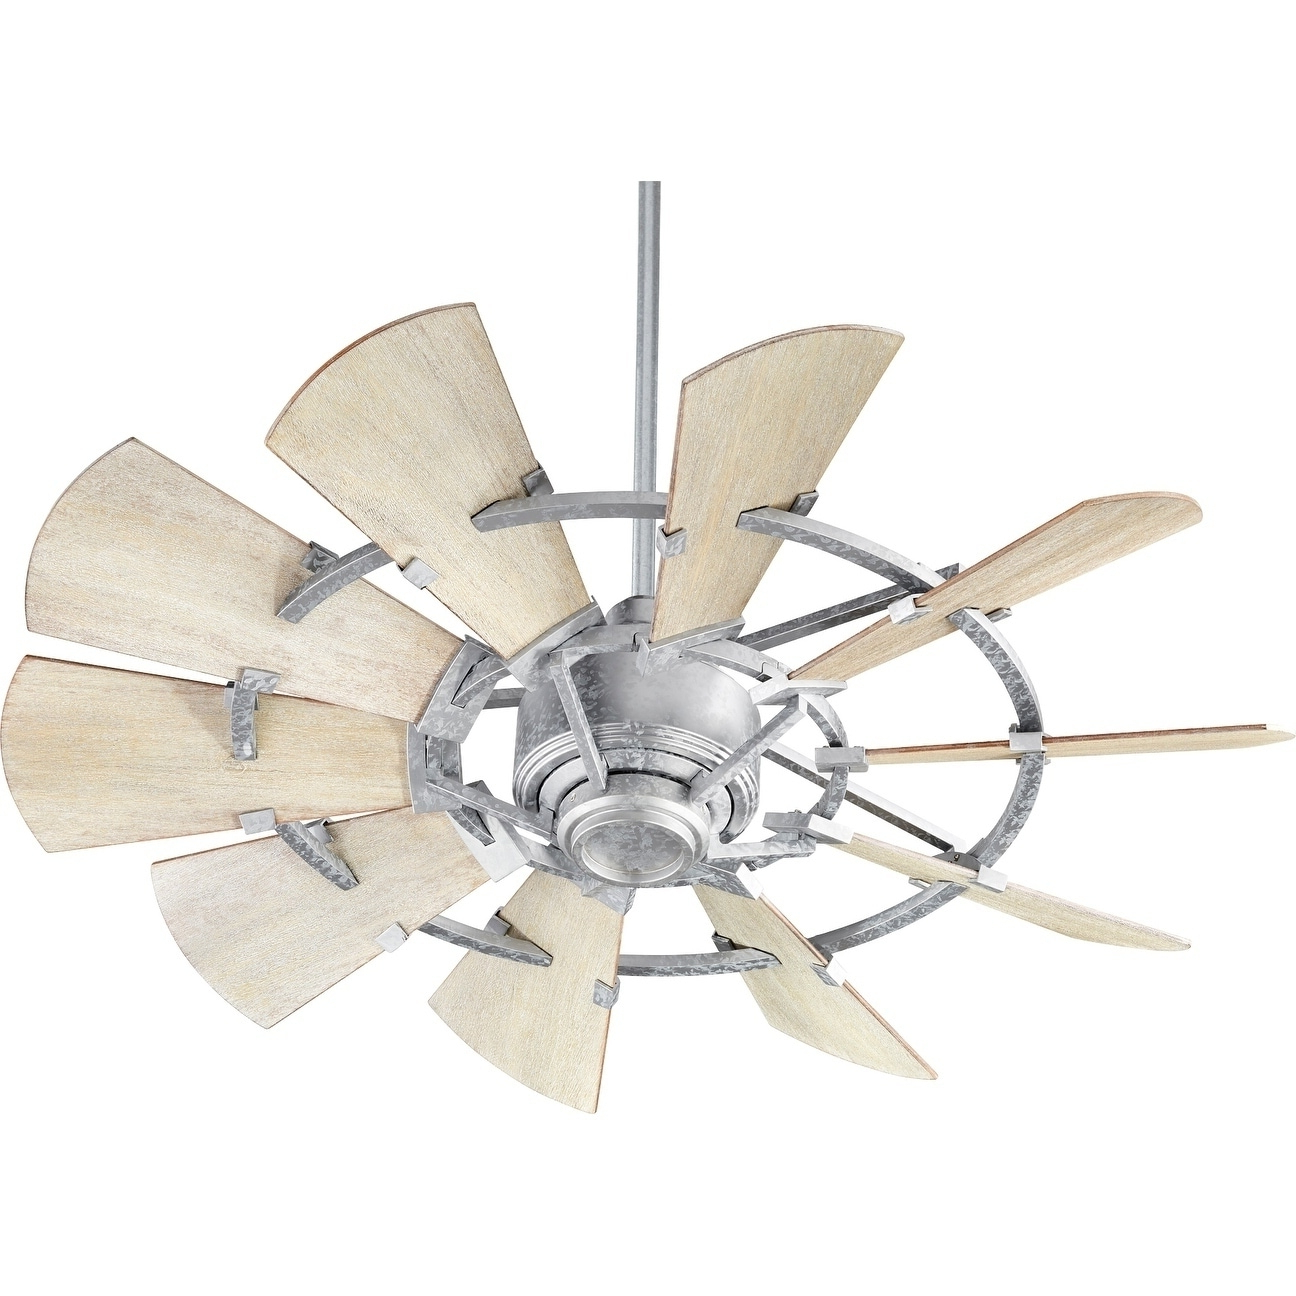 Design: Home With Regard To Joanne Windmill 15 Blade Ceiling Fans (View 6 of 20)